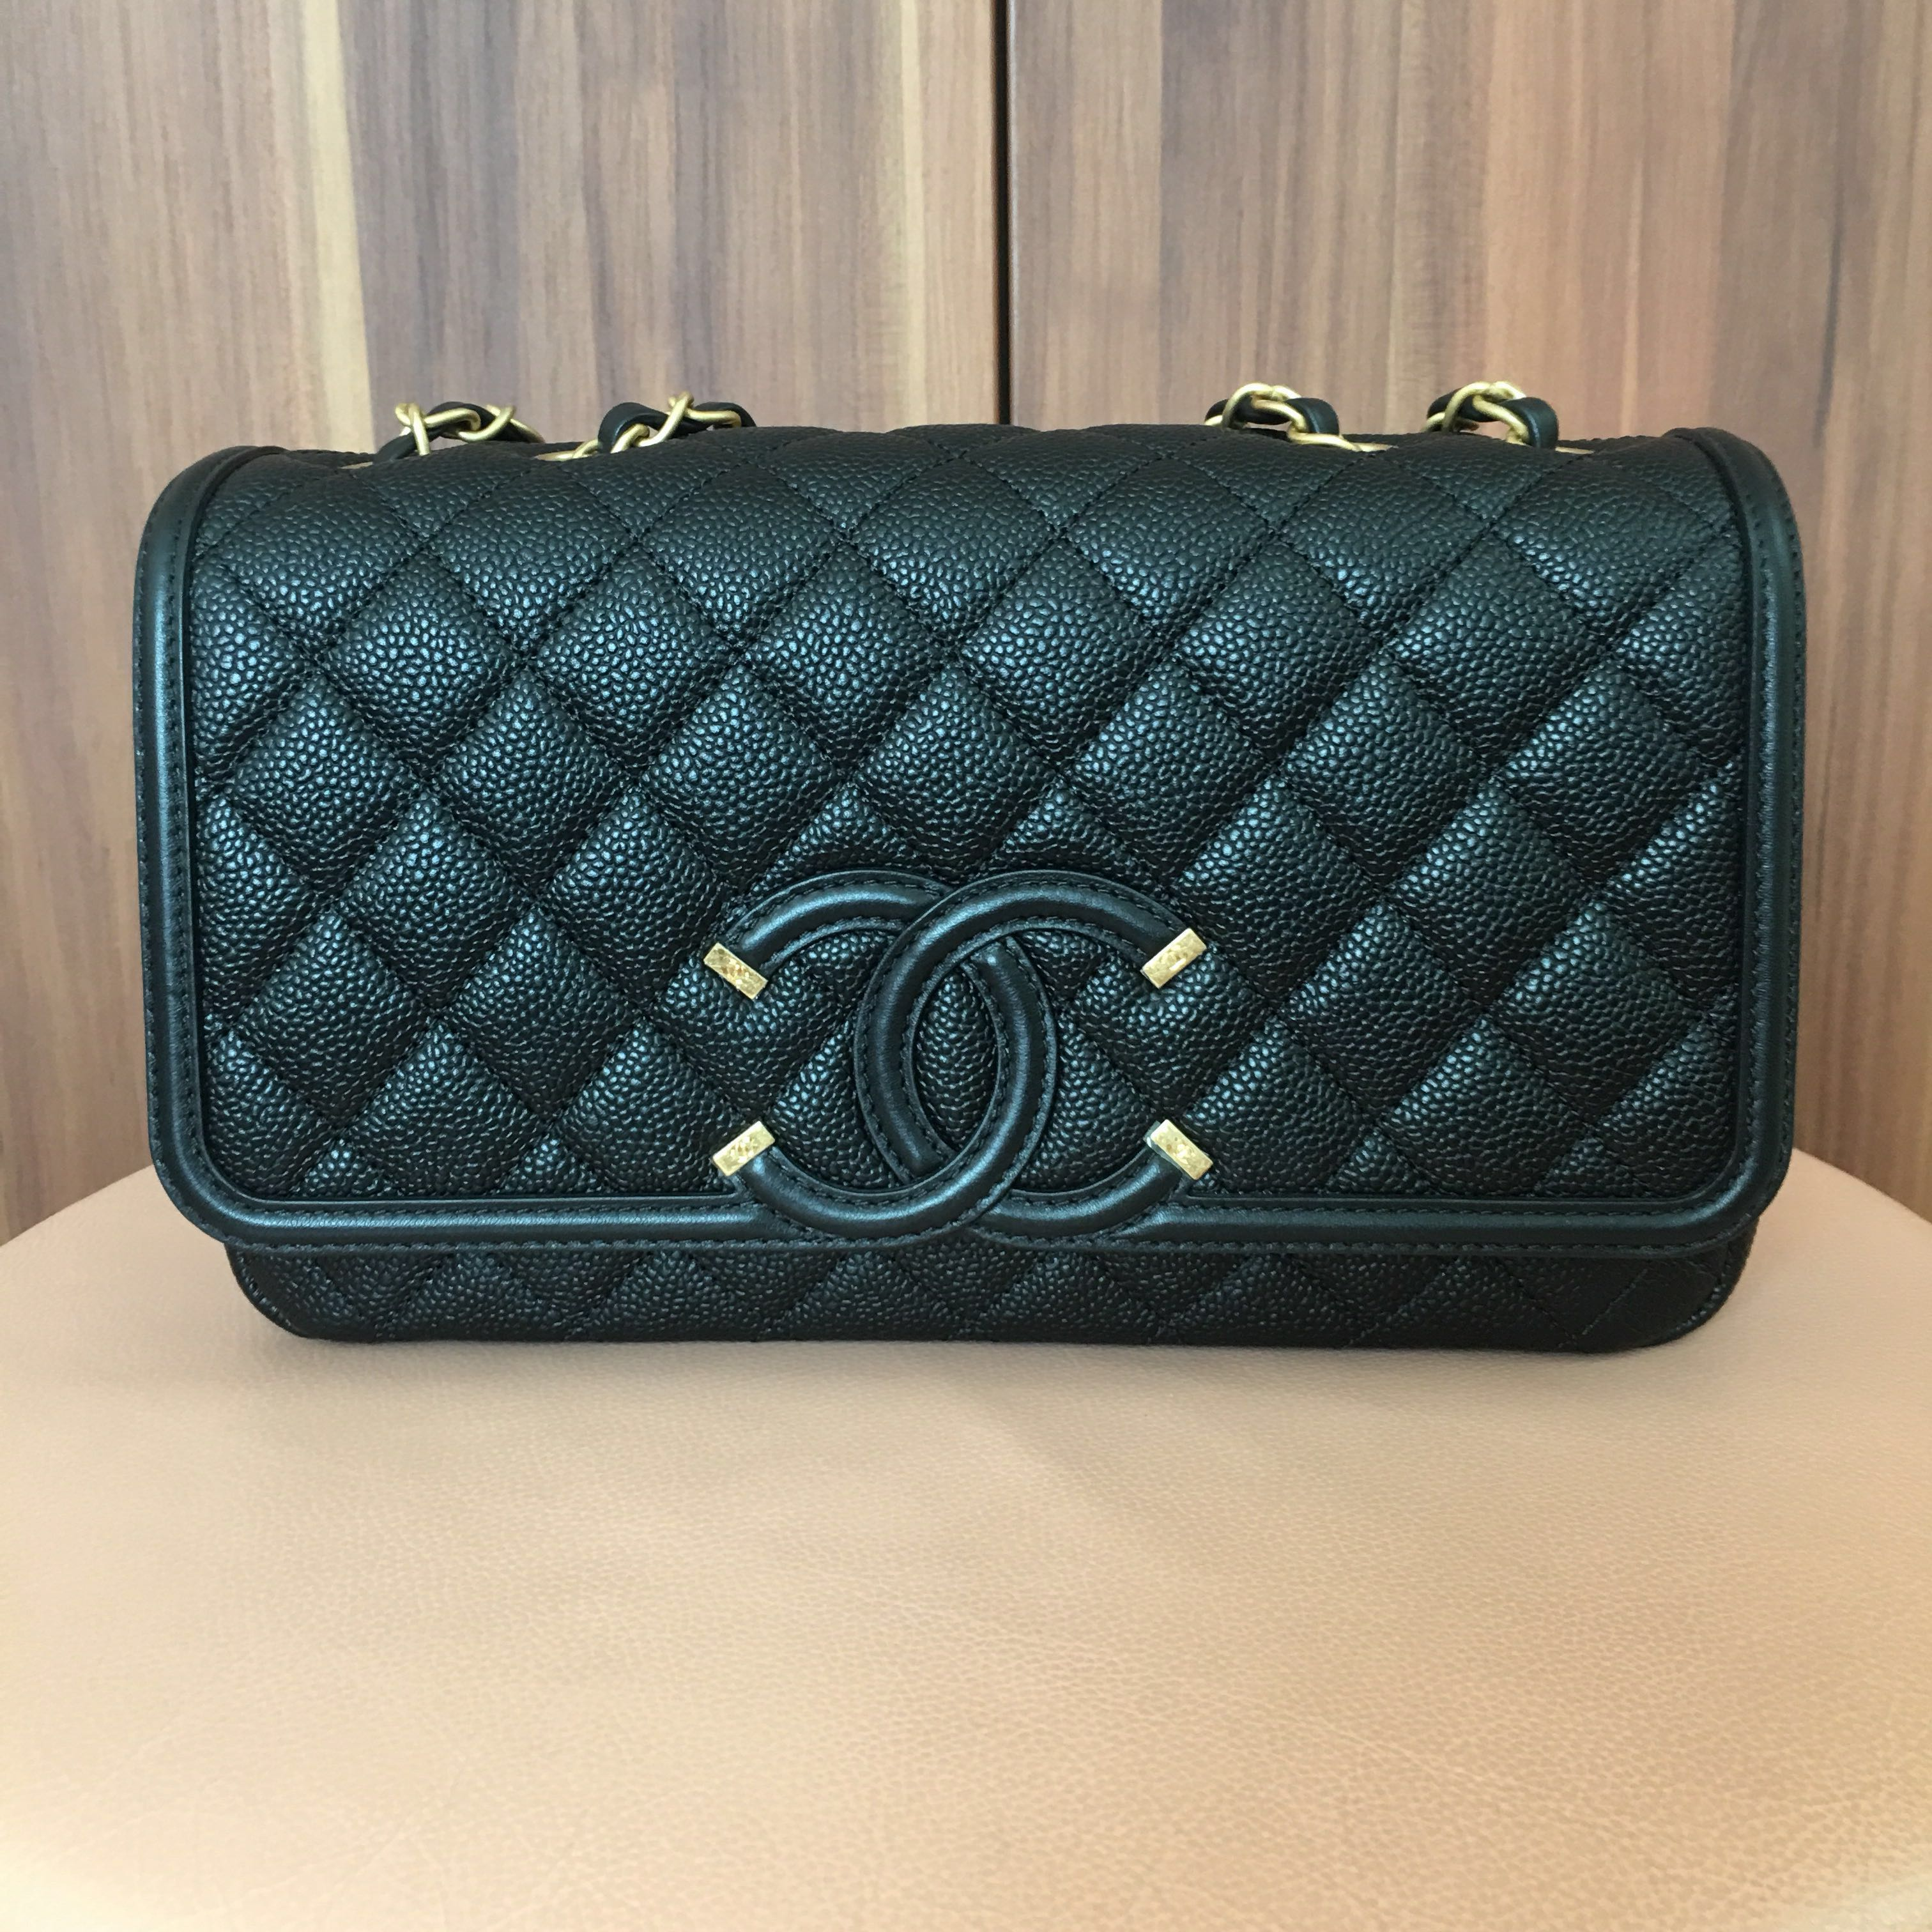 0e2a0ad91af8 Chanel CC Filigree Medium Flap Bag - Authentic, Women's Fashion, Bags &  Wallets, Handbags on Carousell